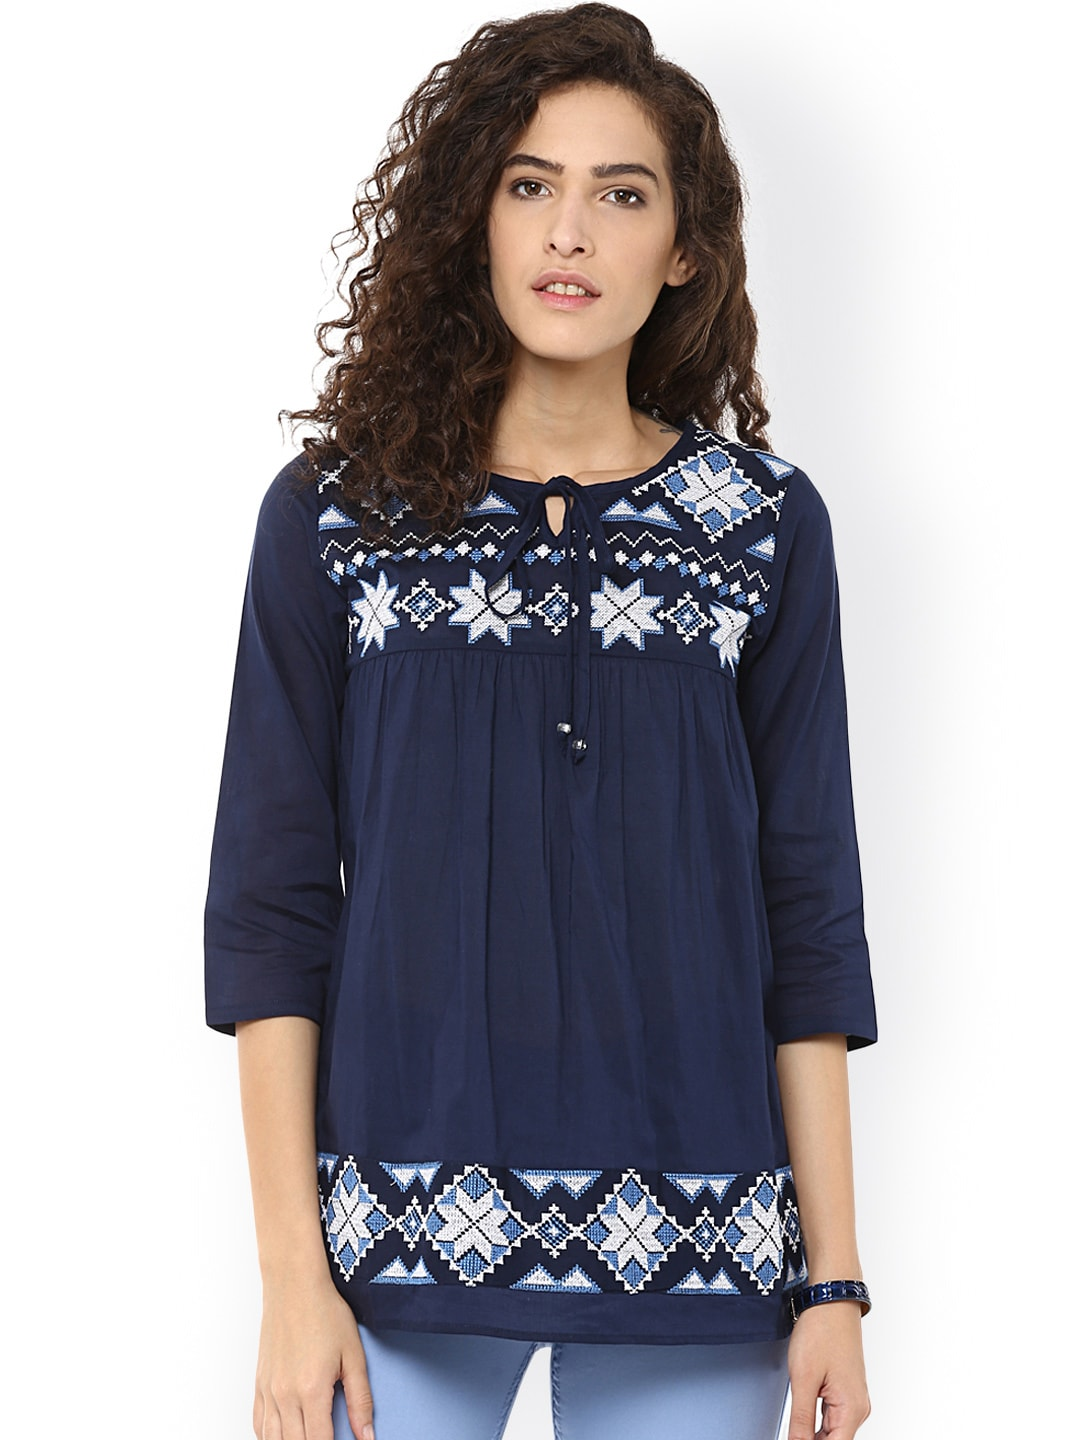 Women Blue Tops - Buy Women Blue Tops online in India